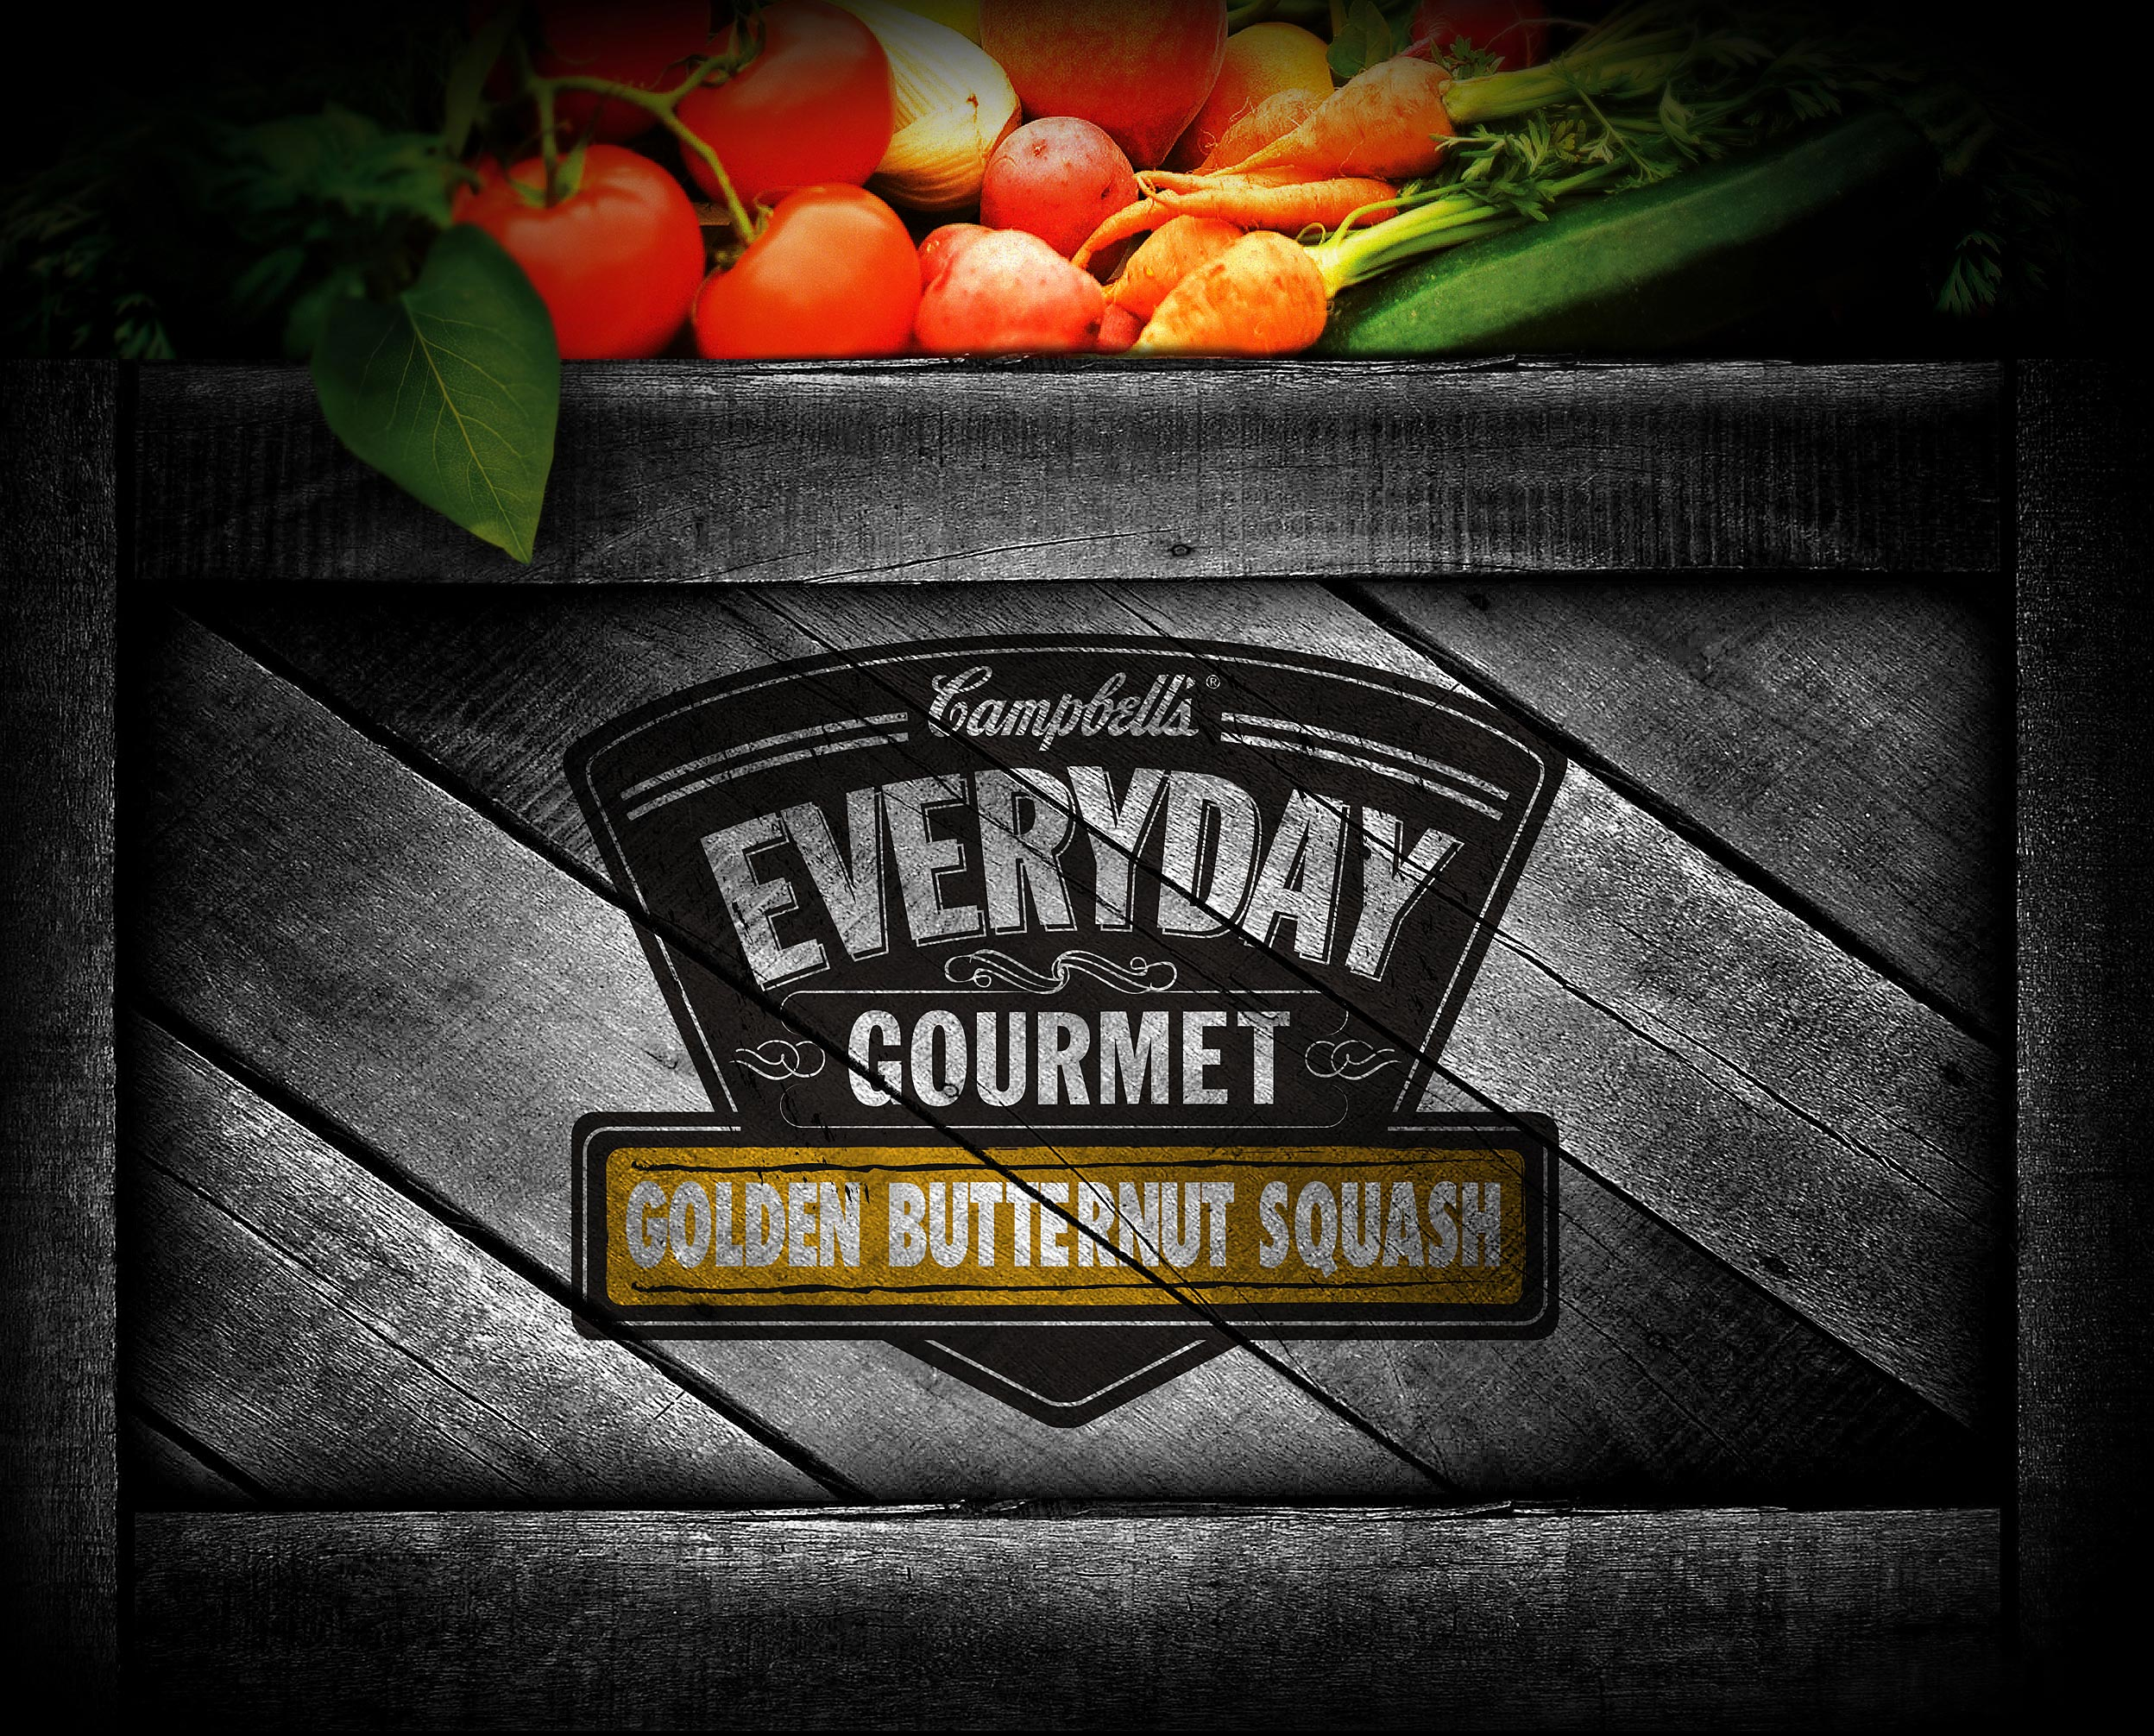 Campbell's Every Day Gourmet Label Design